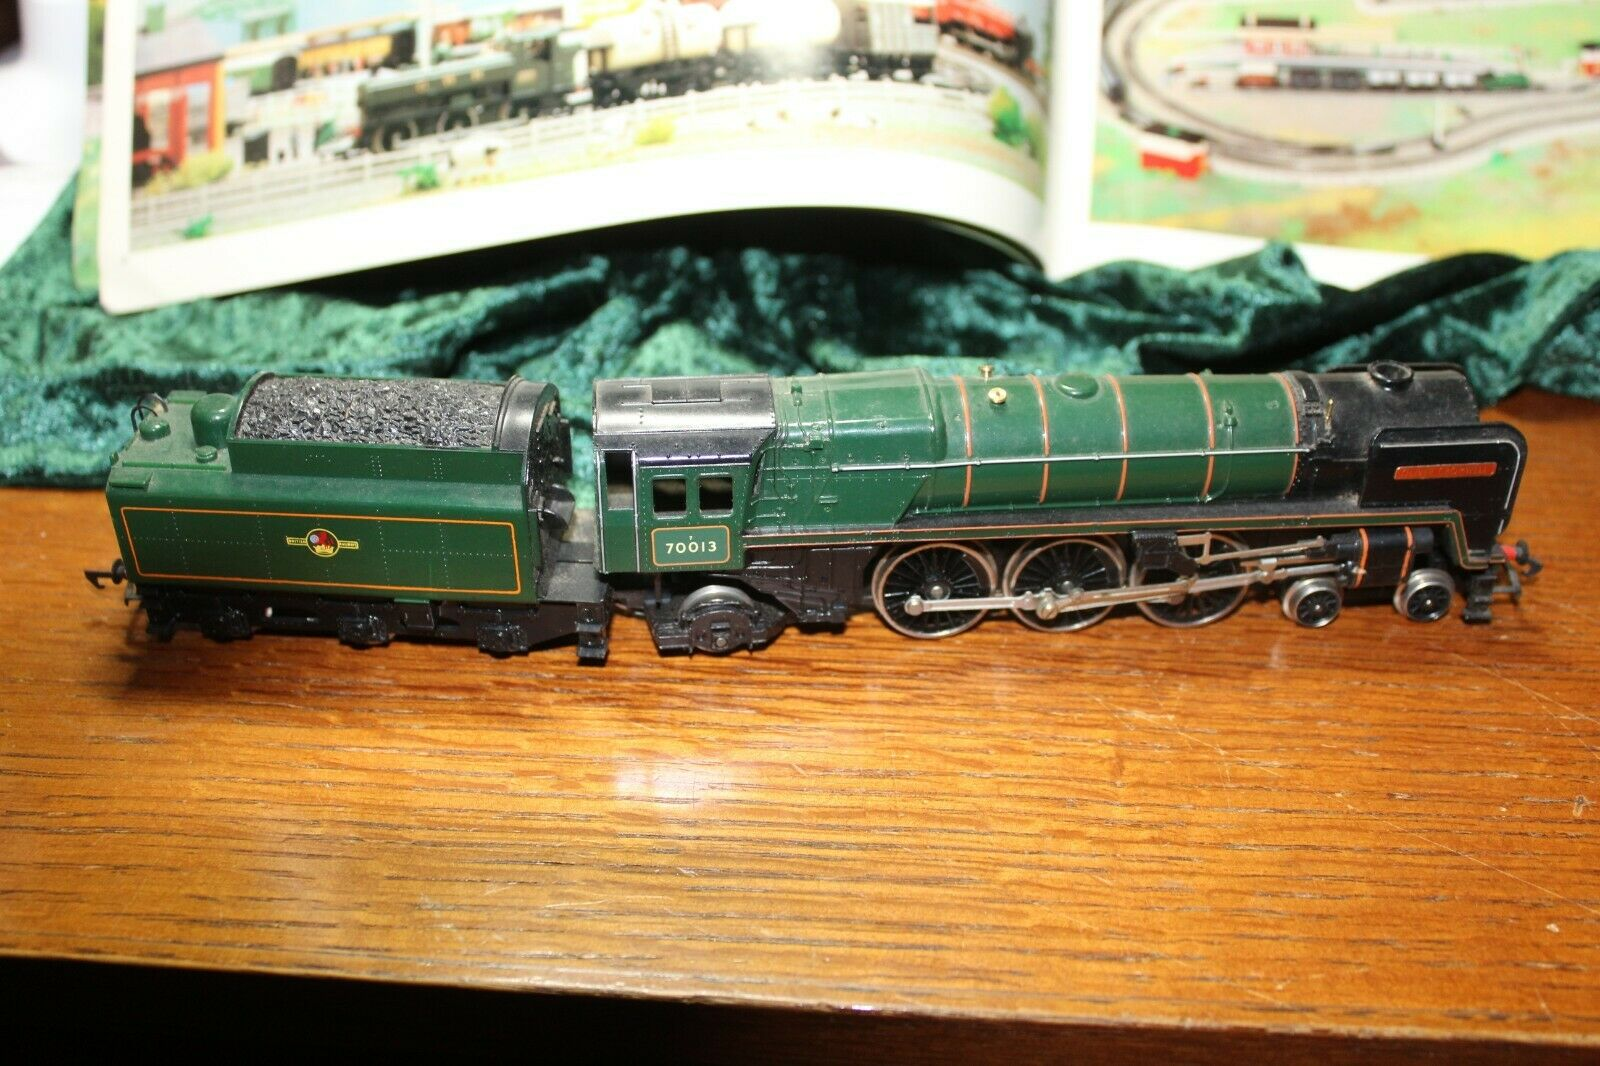 HORNBY OO HO Gauge 4-6-2 70013 Oliver Cromwell engine and tender, all good (1900